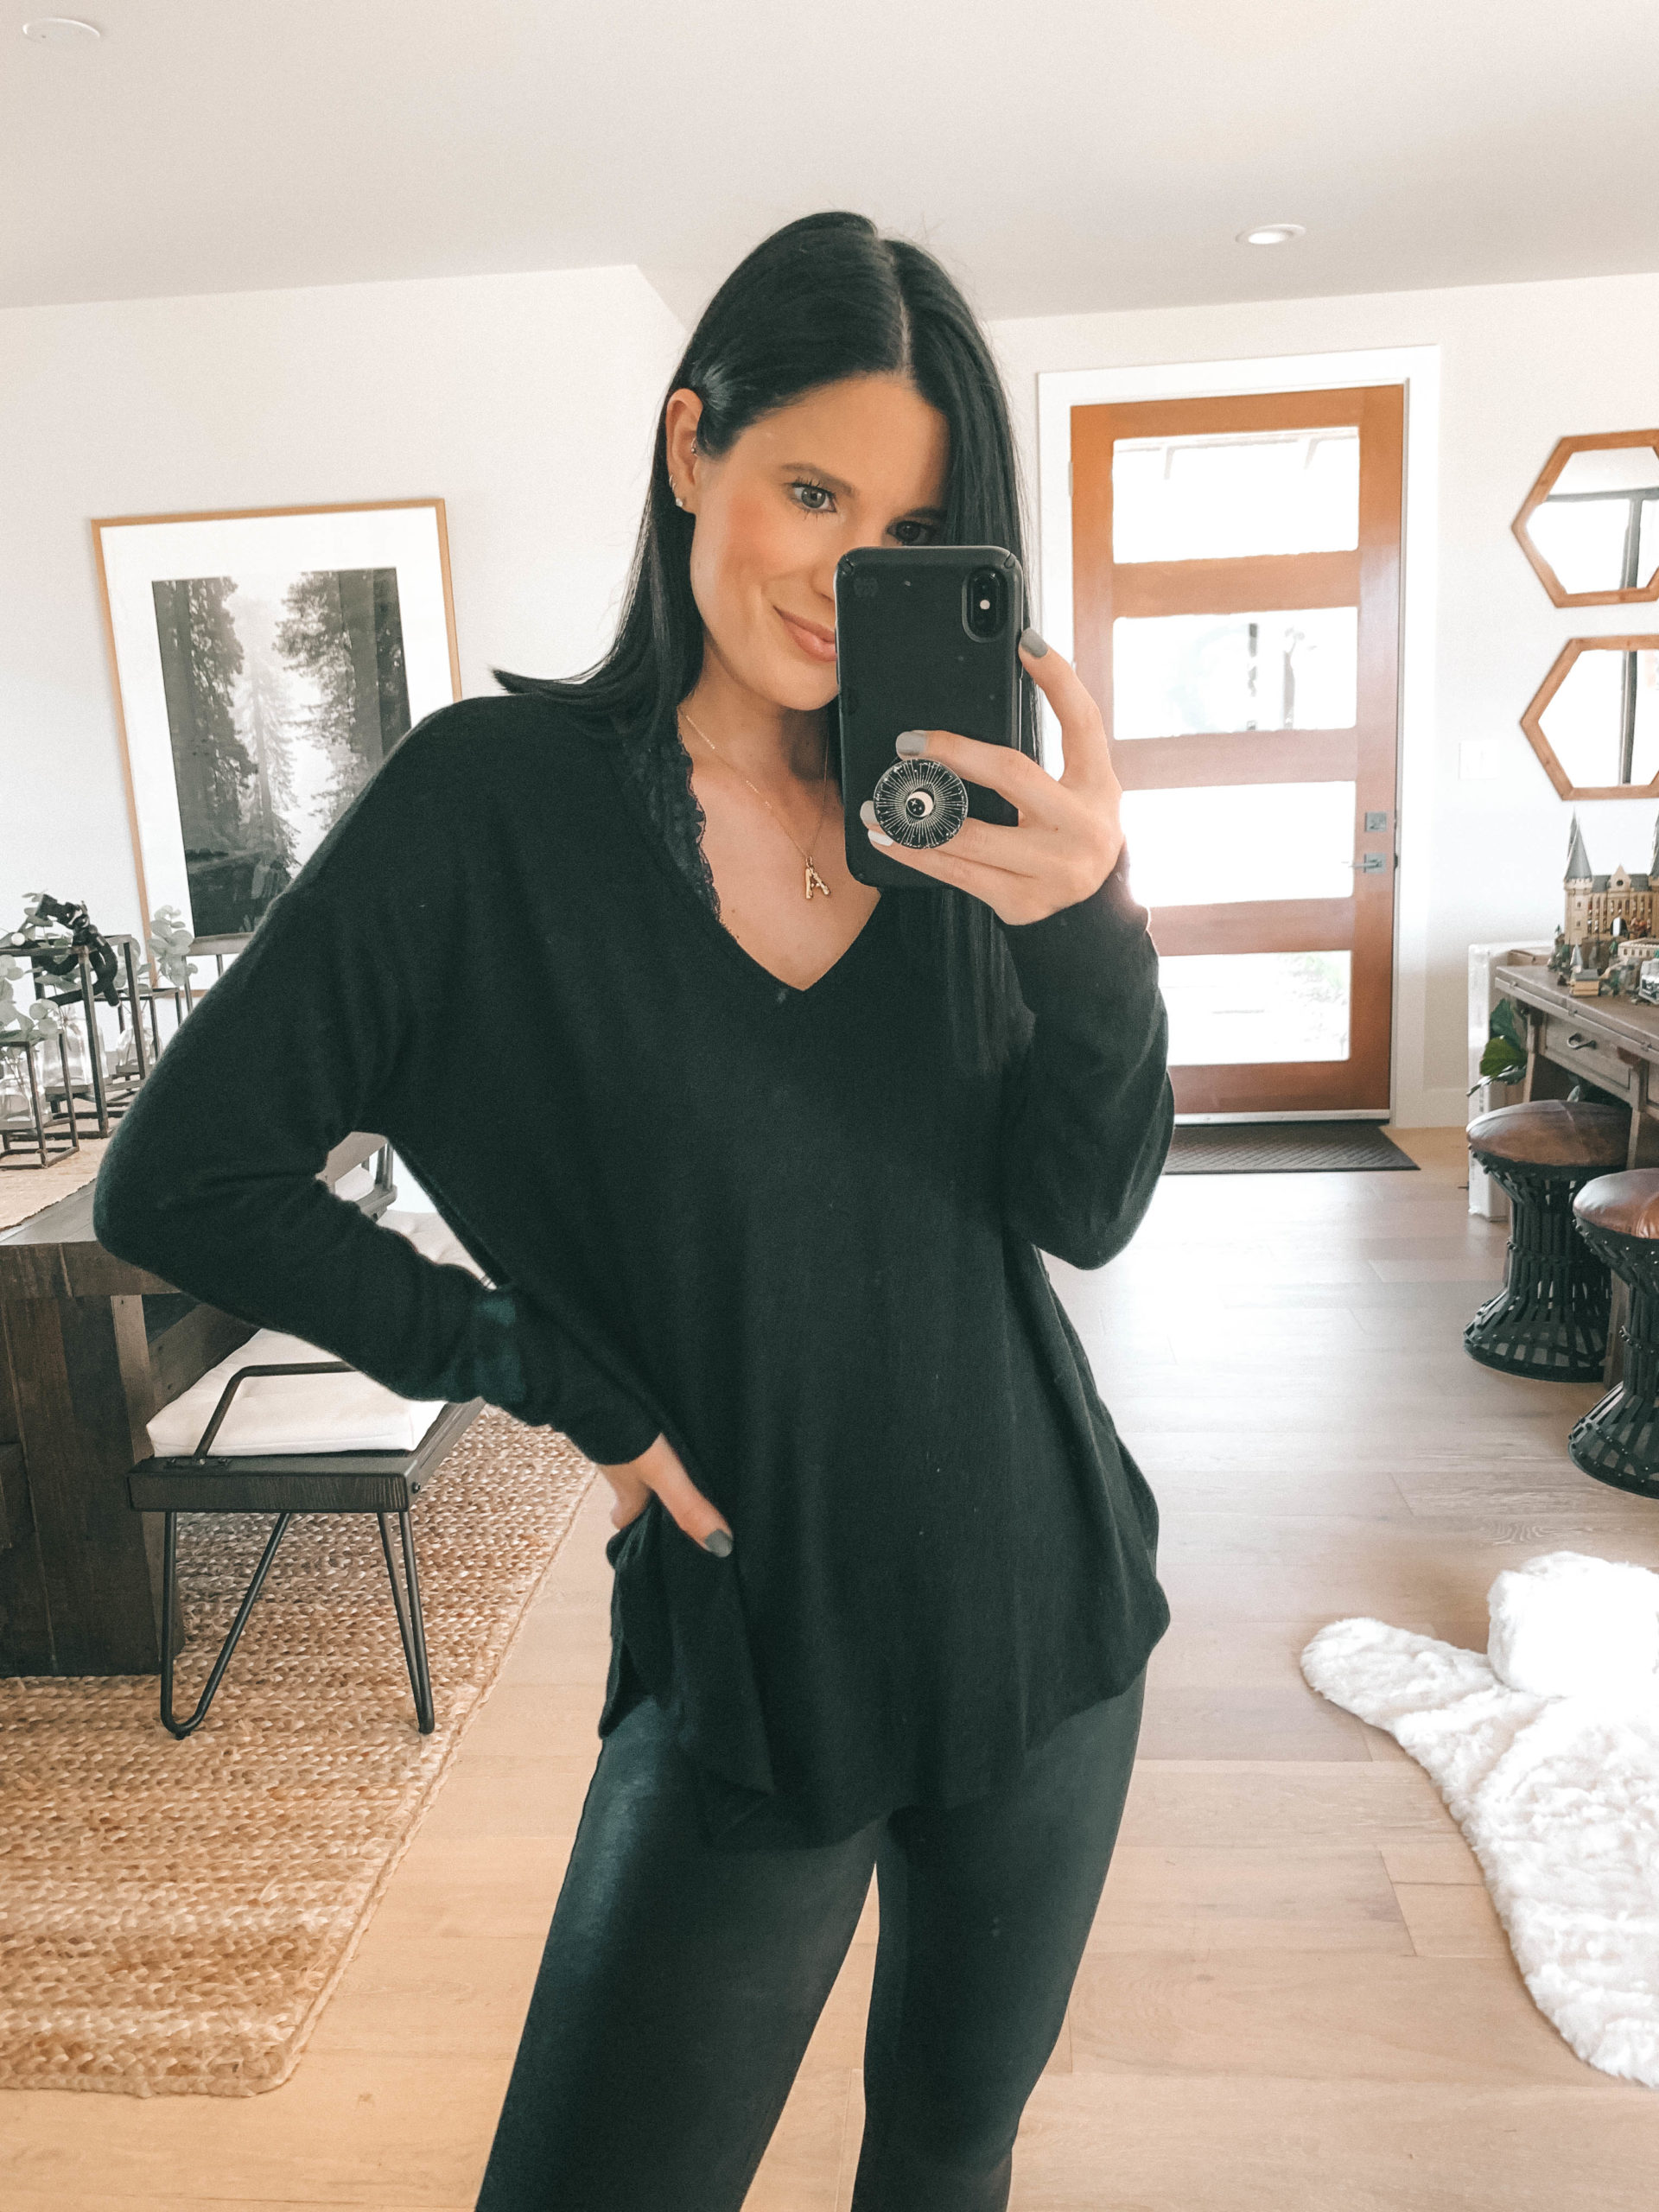 Nordstrom Anniversary Sale by popular Austin fashion blog, Dressed to Kill: image of a woman wearing a Nordstrom Cozy V-Neck Tunic GIBSON and Nordstrom Faux Leather Leggings SPANX.